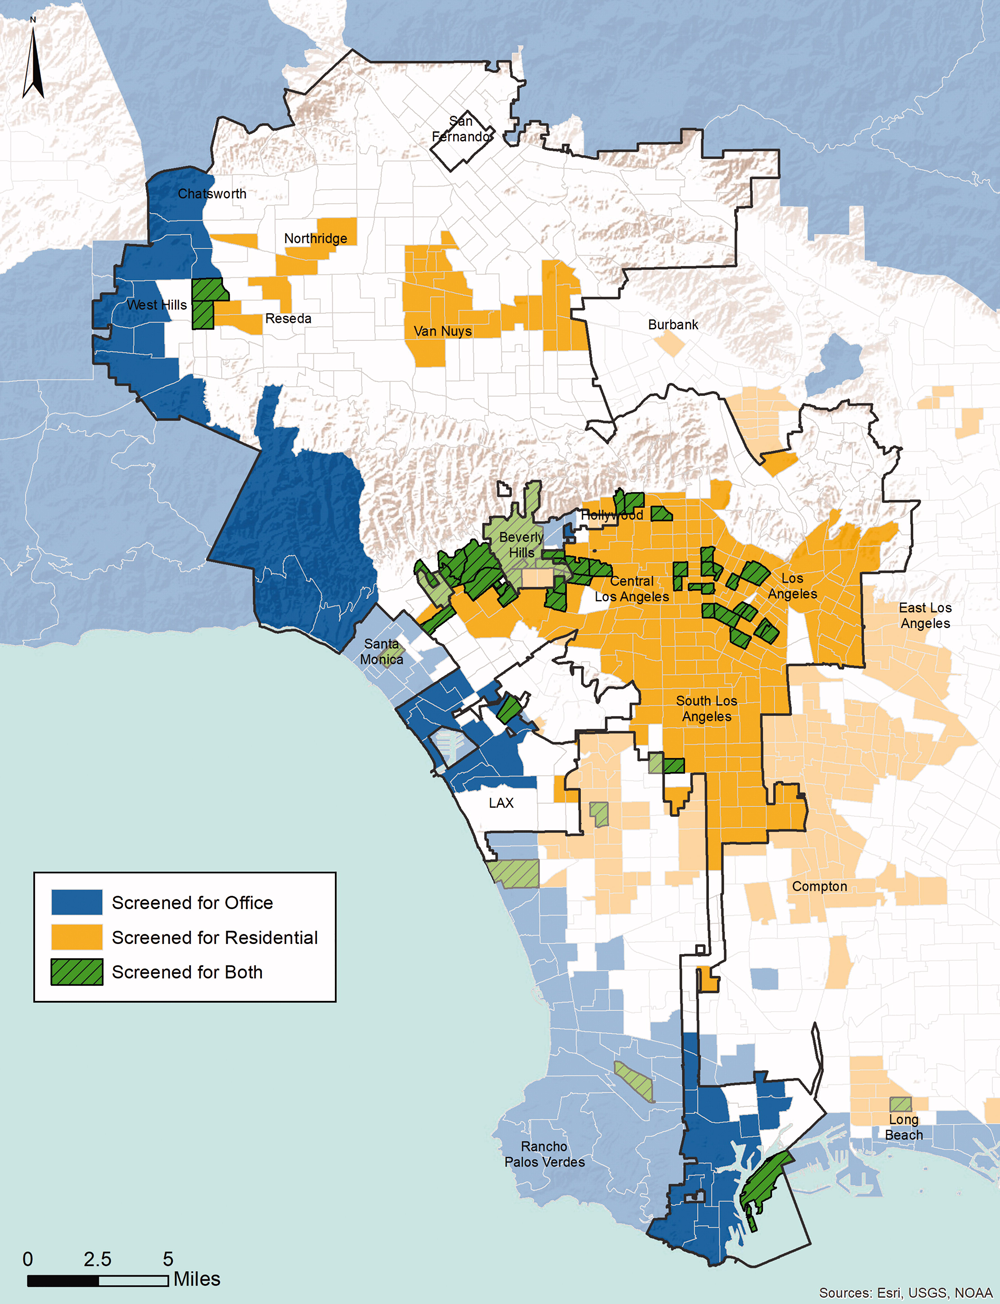 "Low-VMT transportation analysis zones meeting map-based screening thresholds for office and residential projects. Figure 3 from ""Streamlining the Development Approval Process in a Post-Level of Service Los Angeles."" JAPA Vol. 85, No. 2. Sources Esri, USGS, and NOAA."